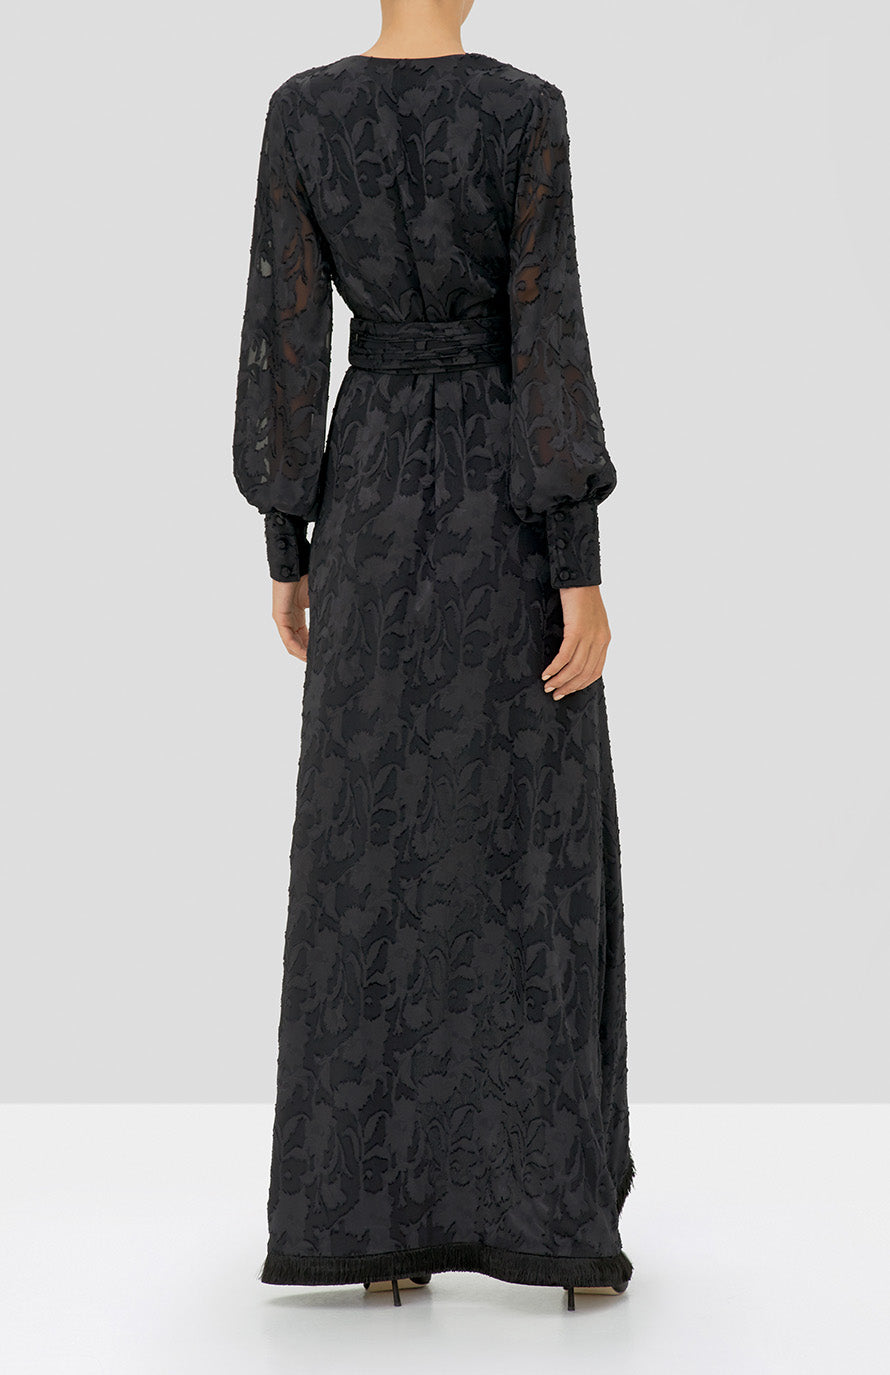 Alexis Antonella Dress in Black Floral from the Holiday 2019 Ready To Wear Collection - Rear View